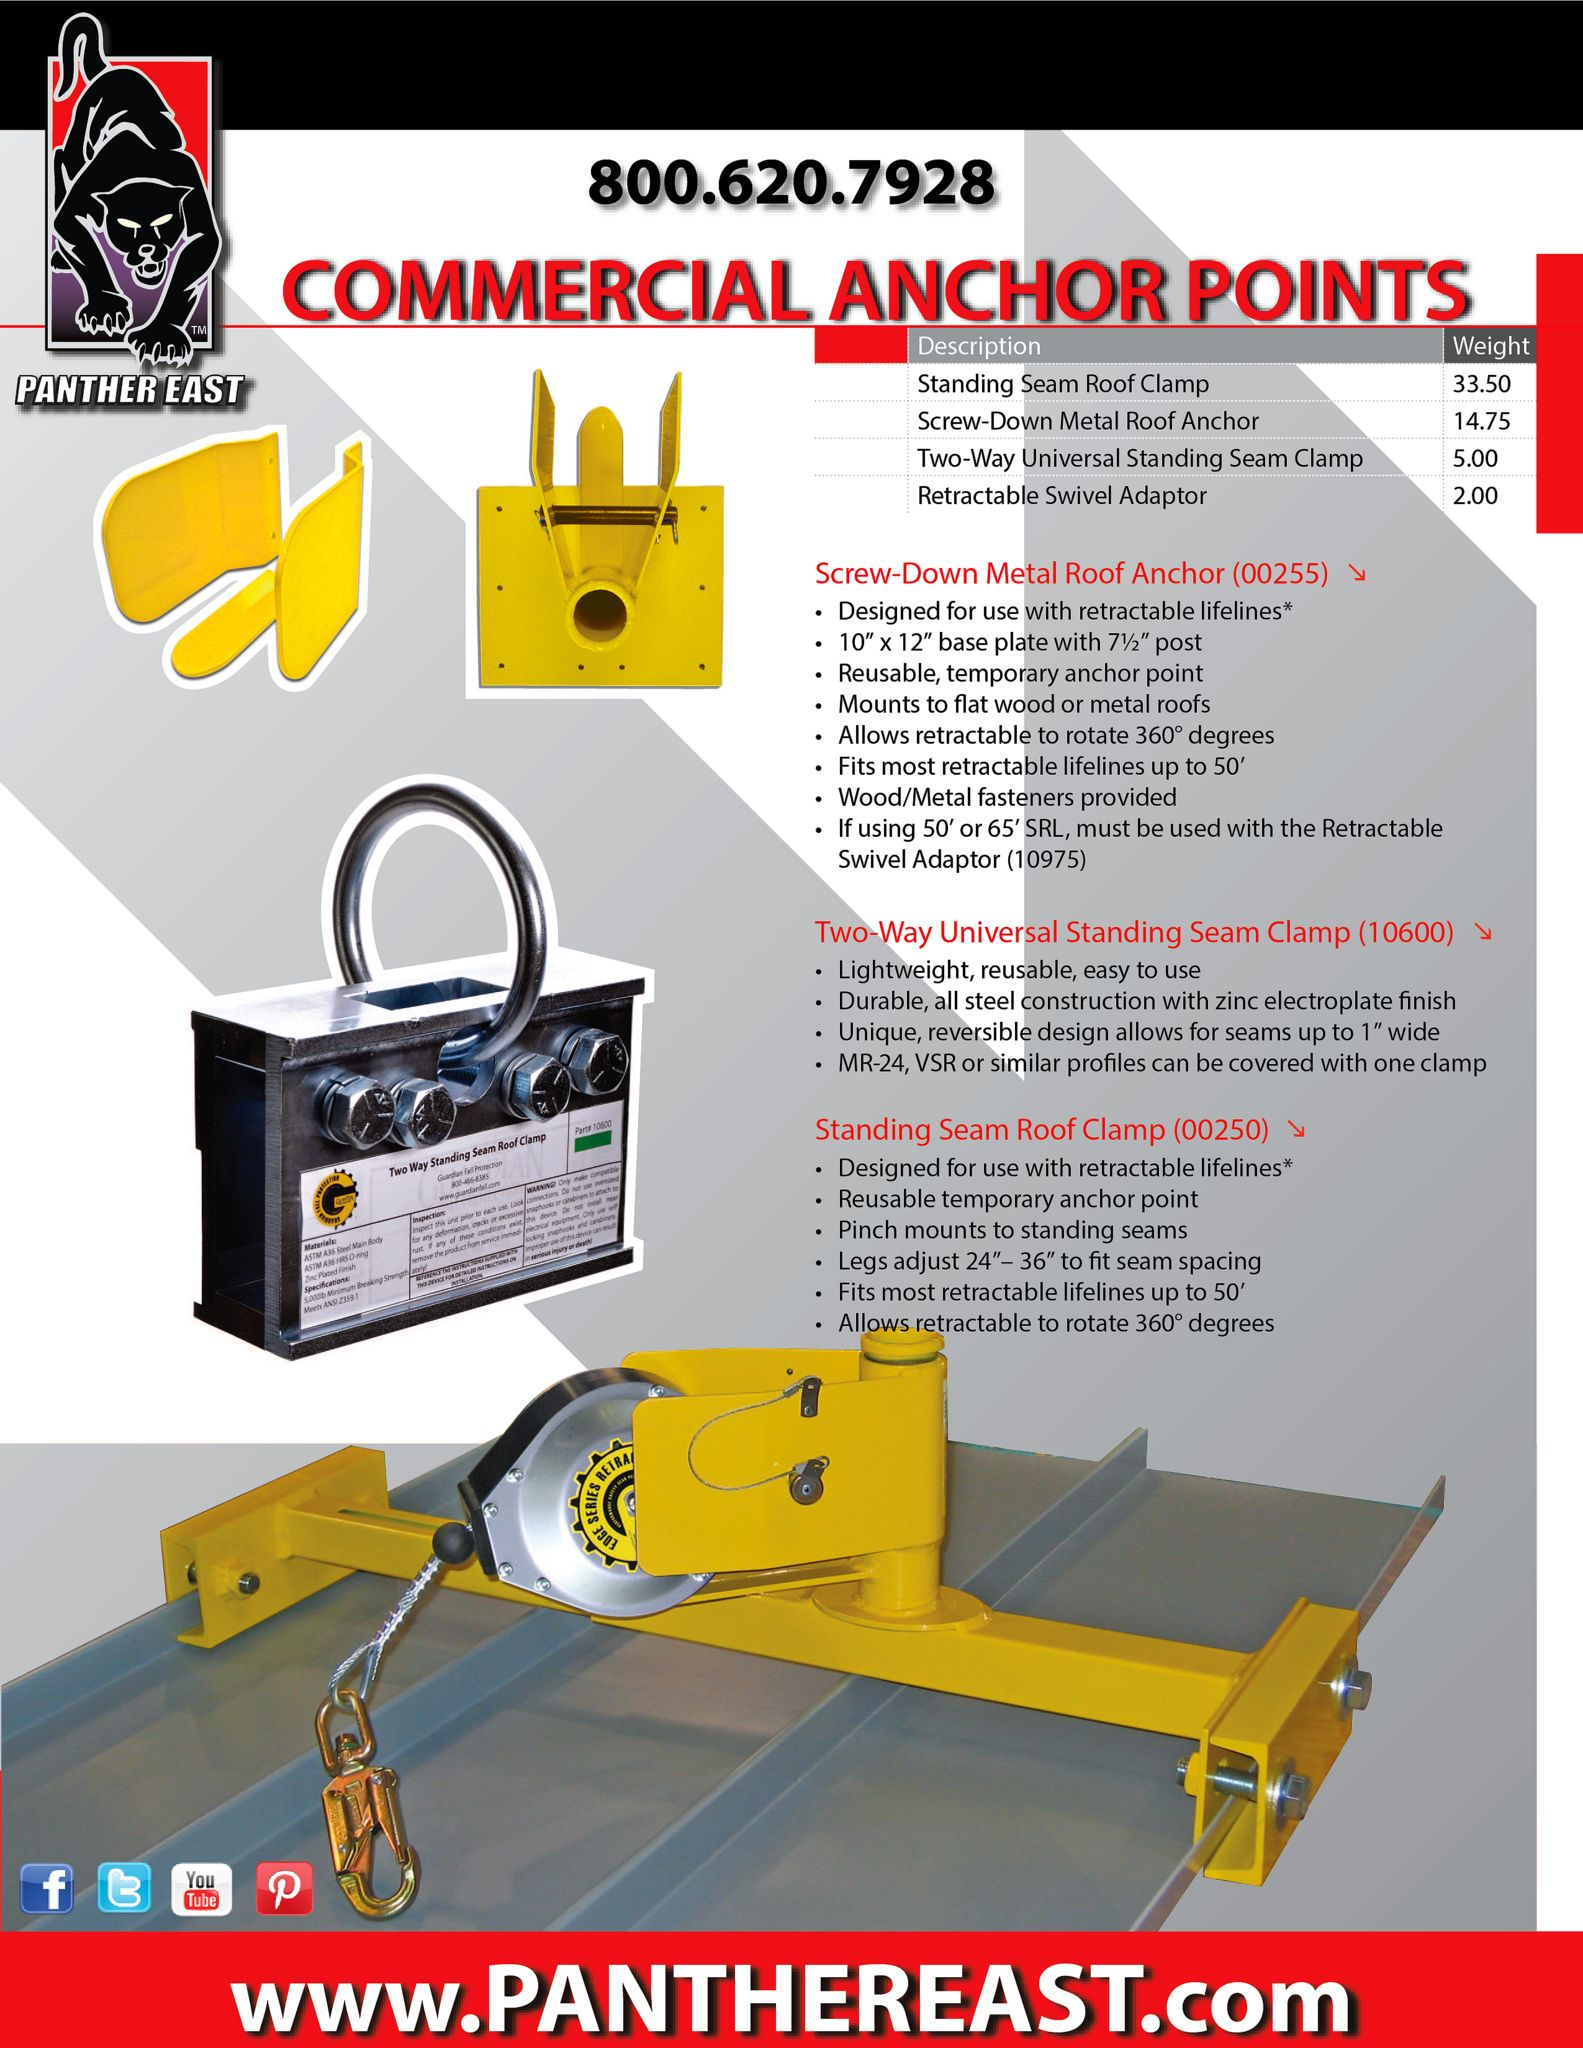 Standing Seam Roof Fall Protection Equipment Www Panthereast Com Standing Seam Roof Standing Seam Roofing Equipment